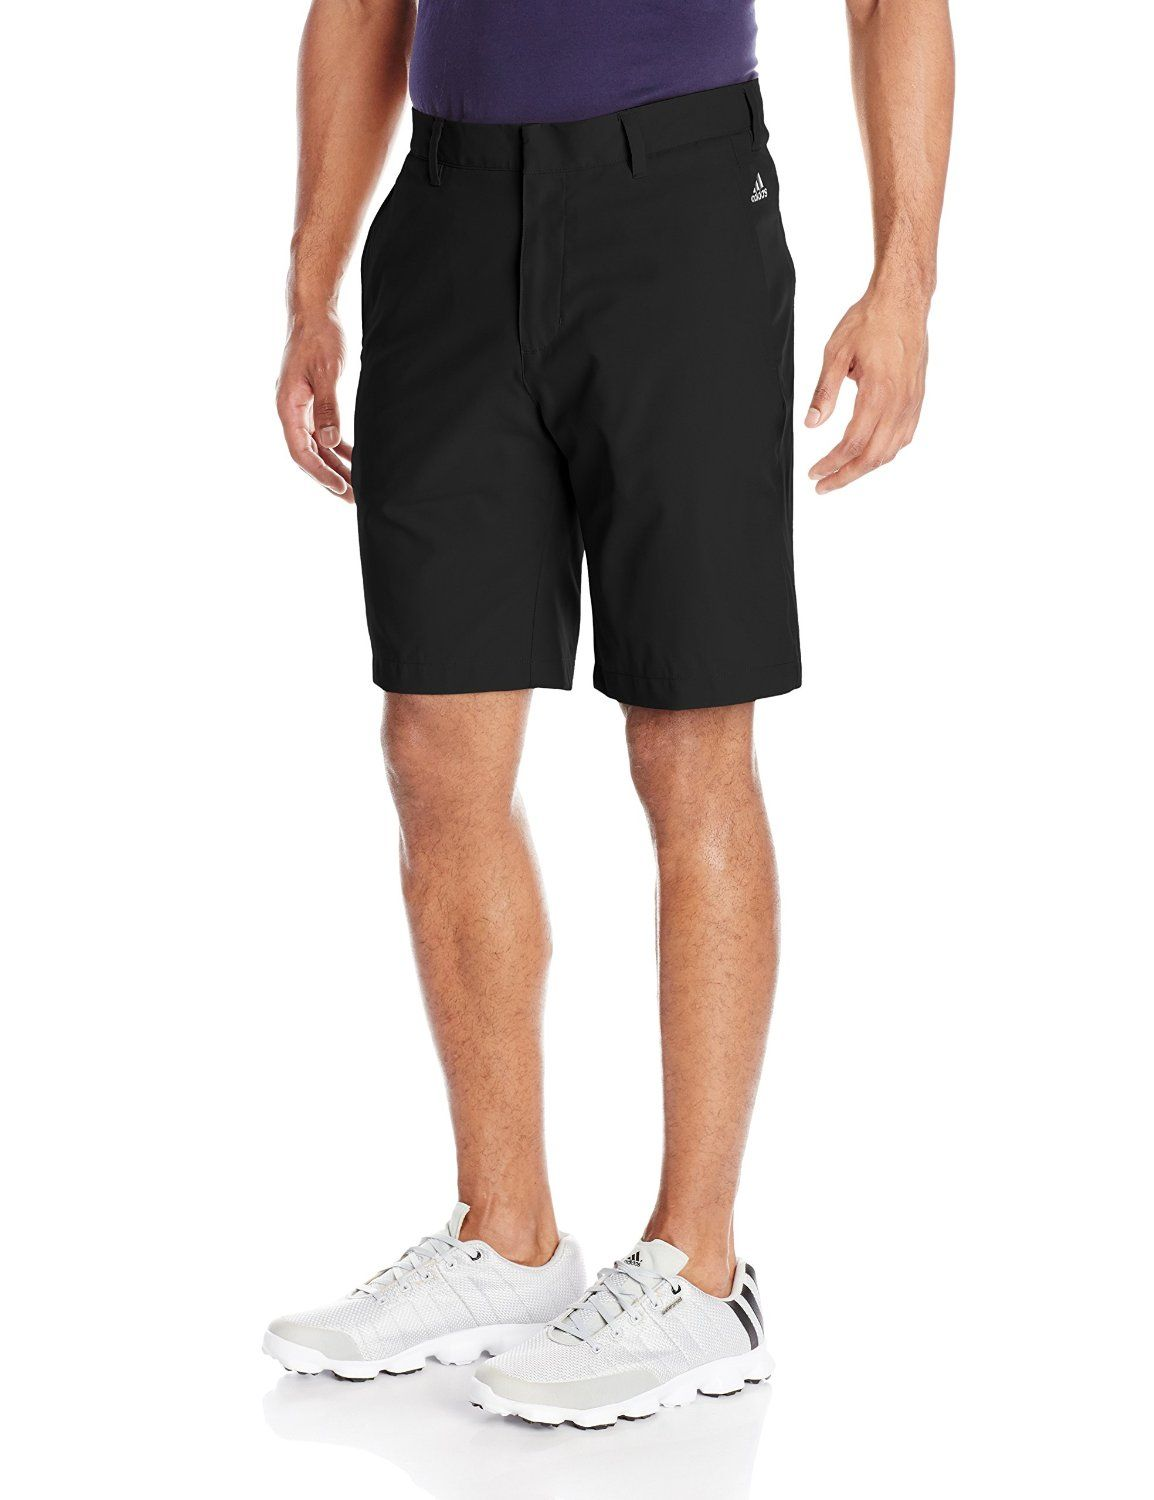 464584ec2 Awesome Top 10 Best Golf Shorts For Men in 2016 Reviews